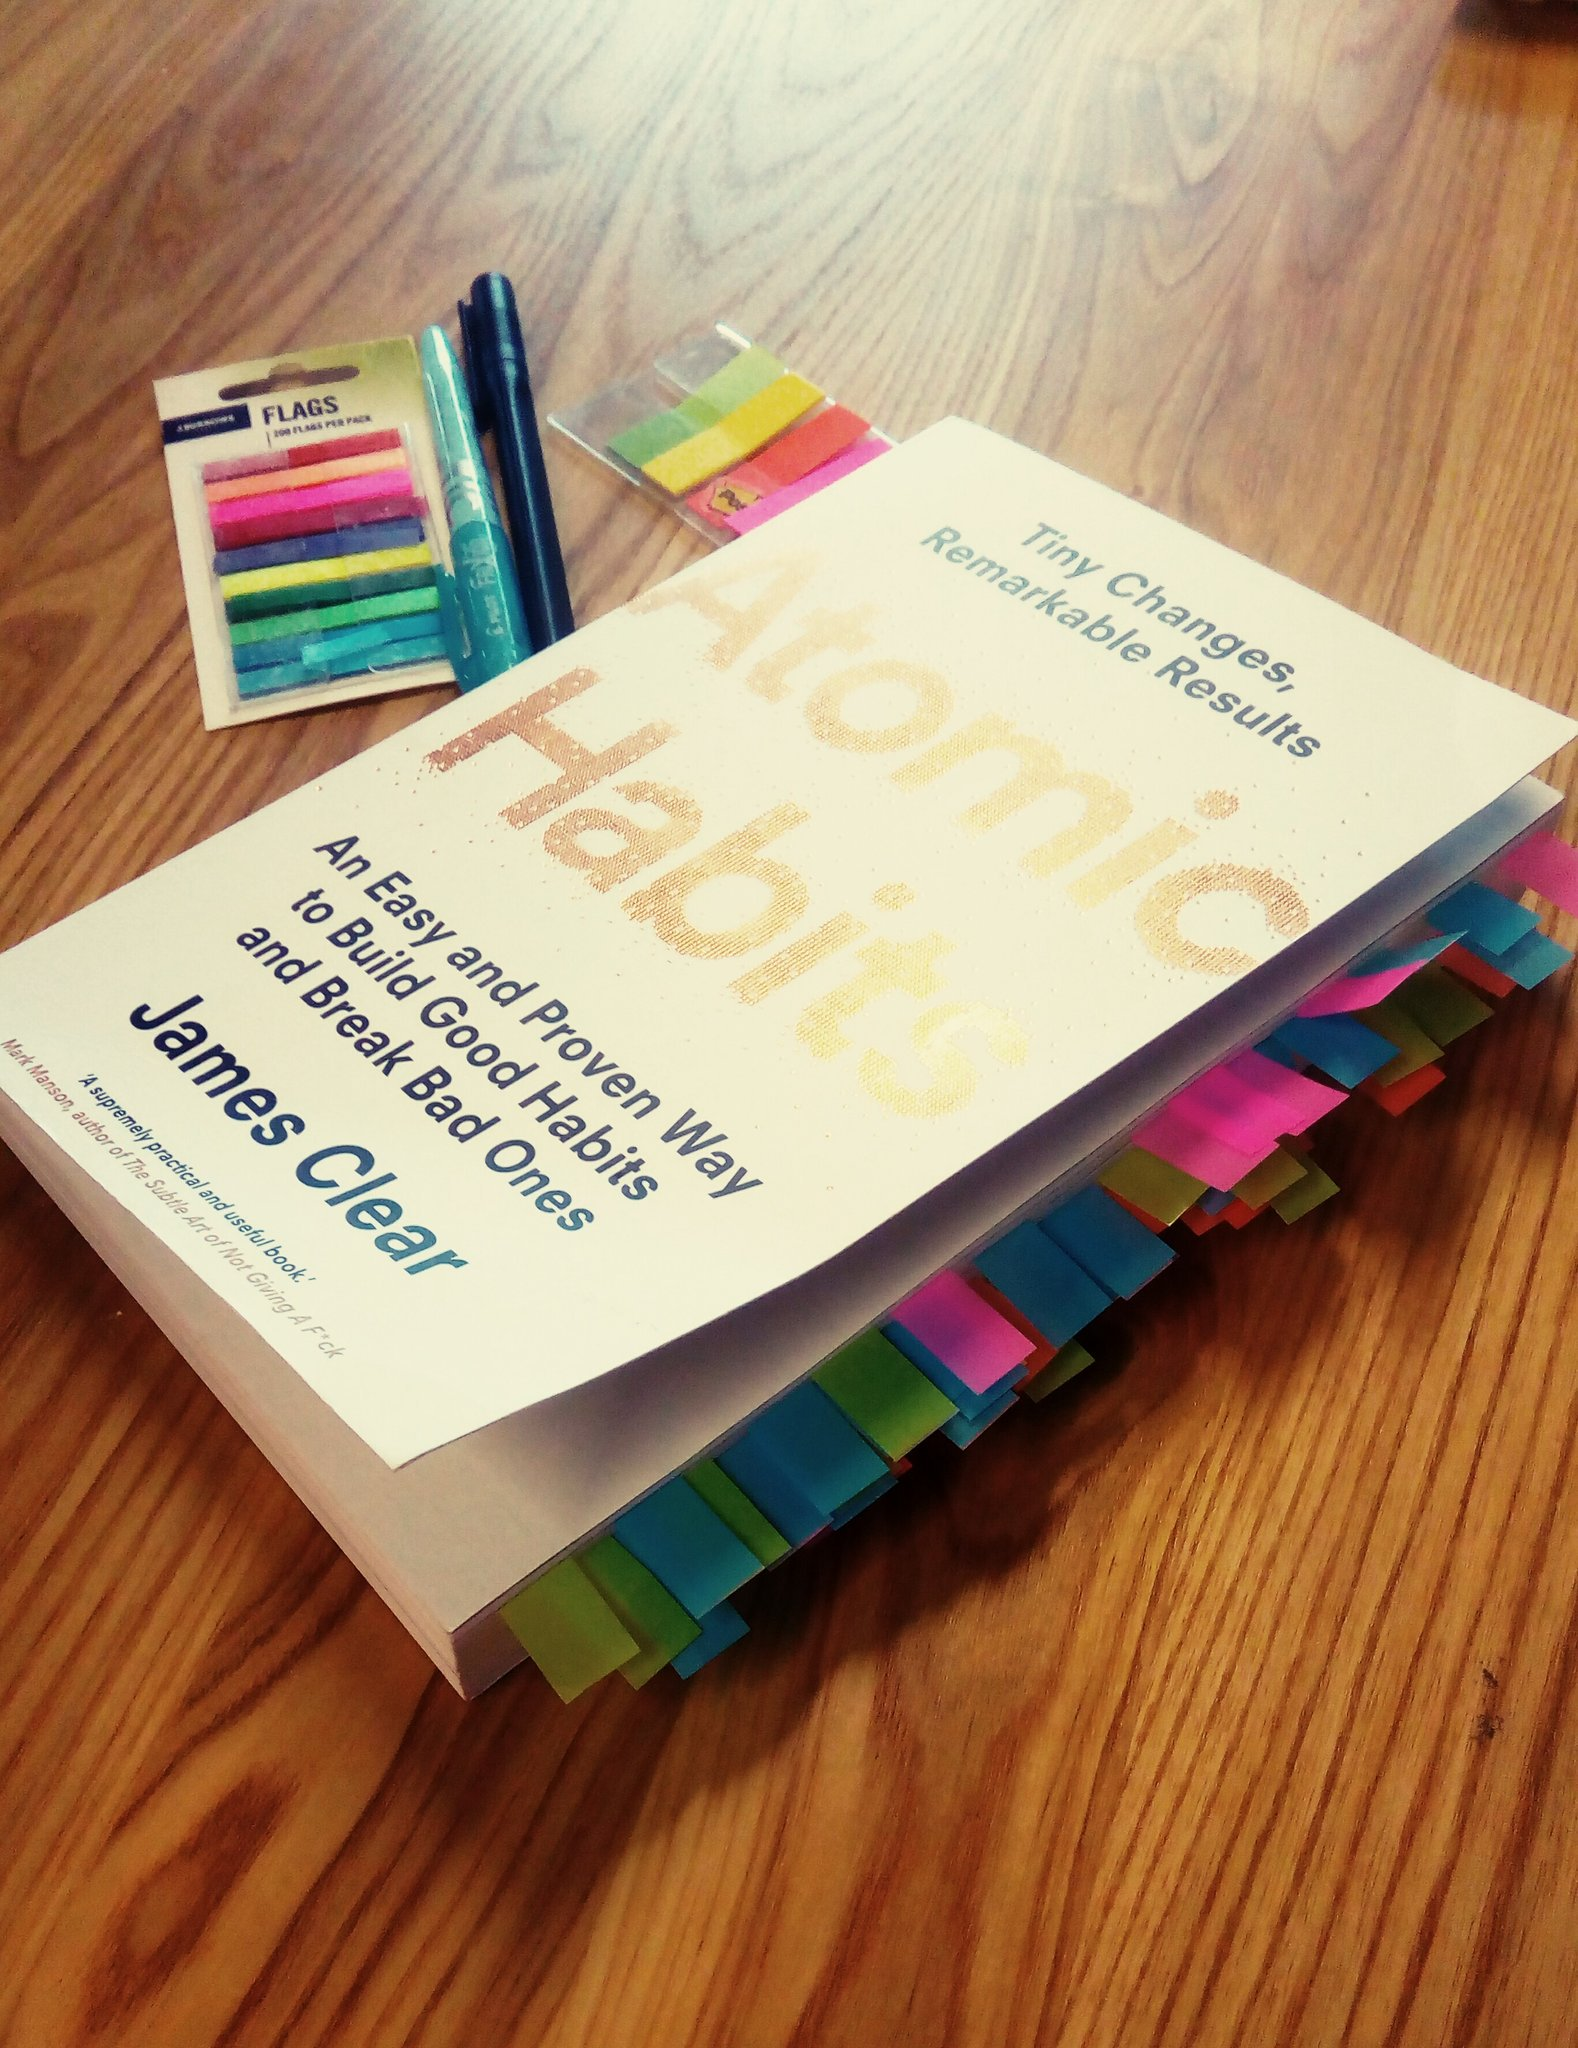 atomic habits book closed and filled with bright coloured index cards